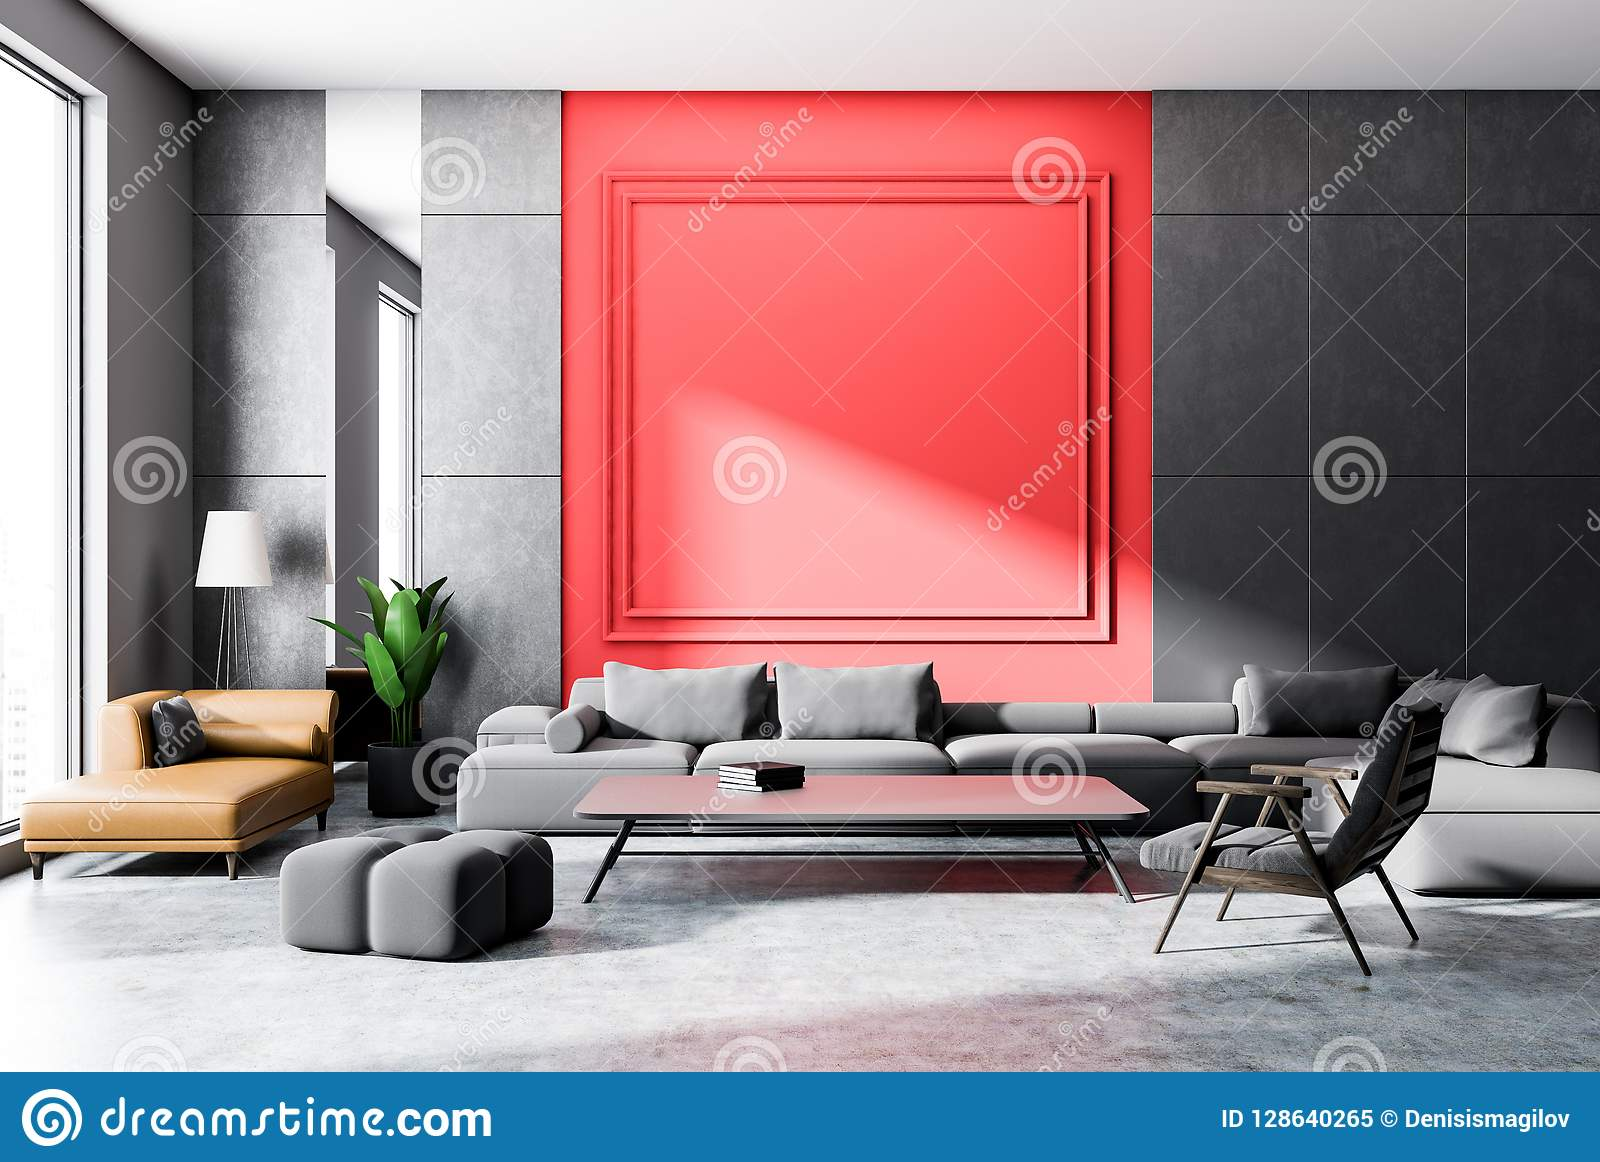 gray and red living room gray sofa stock illustration rh dreamstime com gray and red living room decorating ideas gray and red living room decor